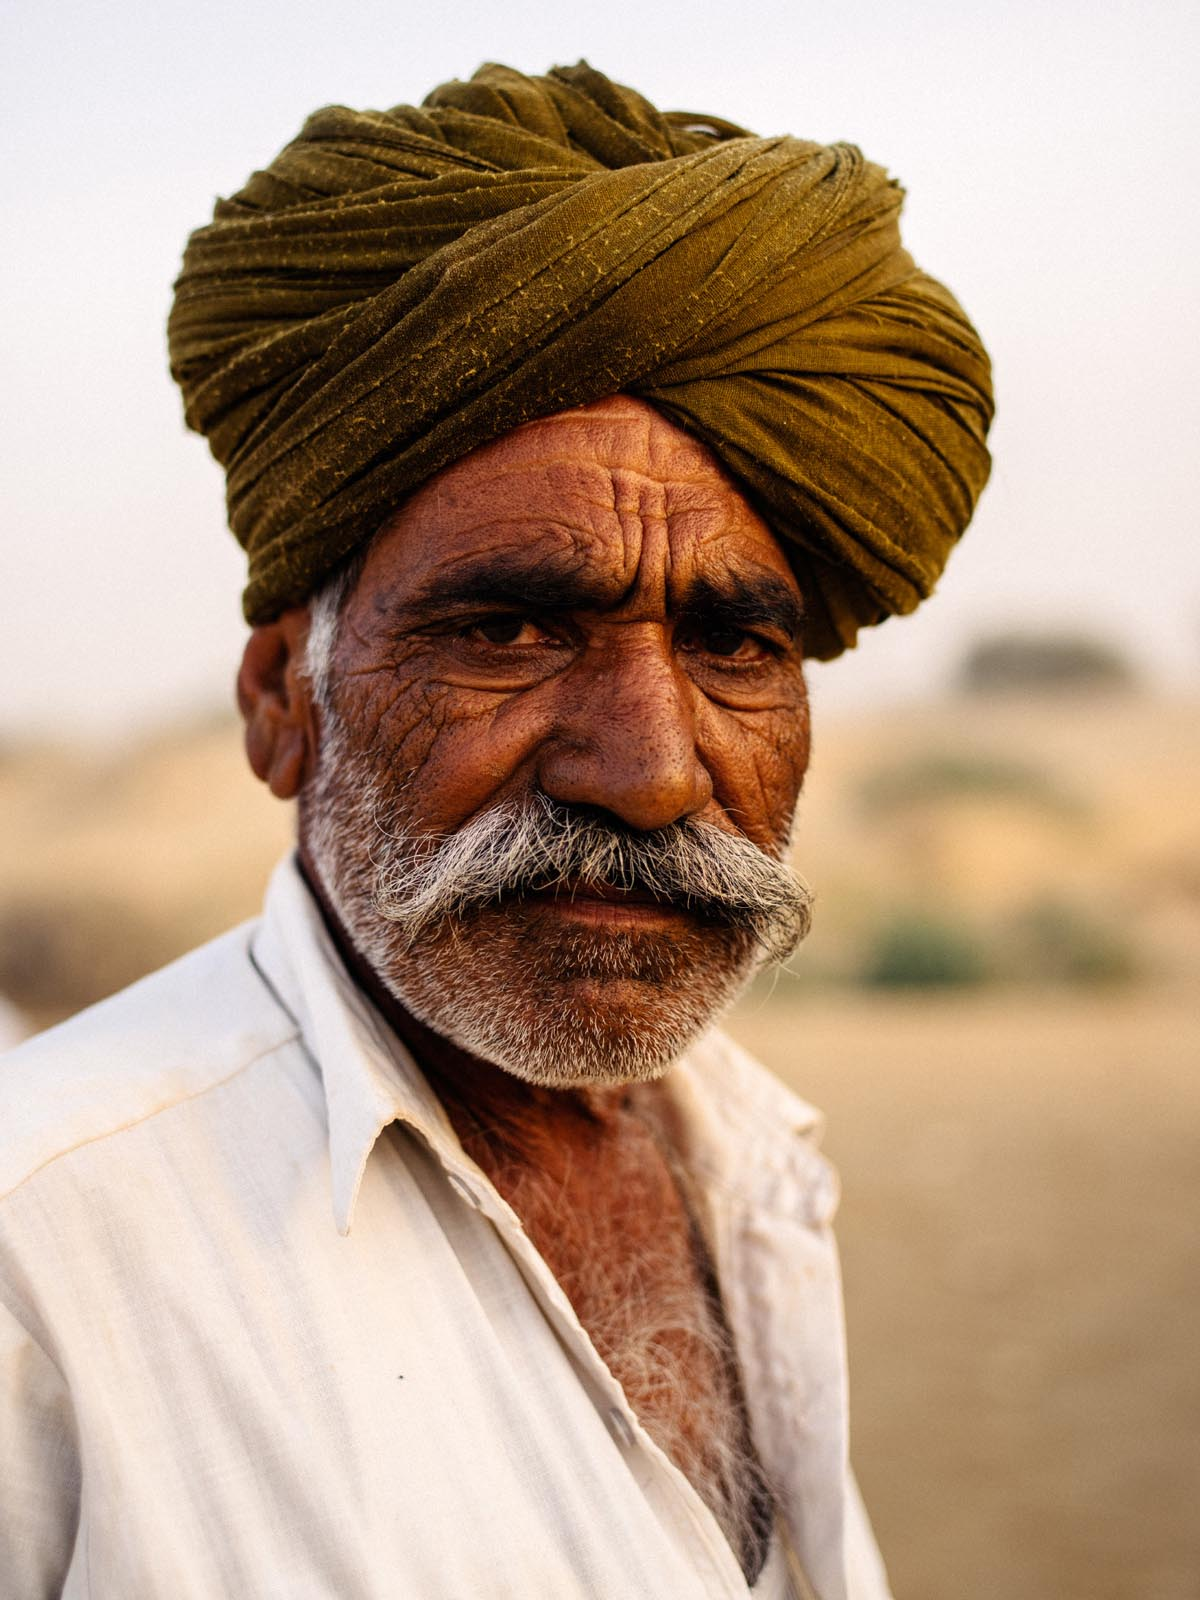 Camel guide. Jaisalmer, India.